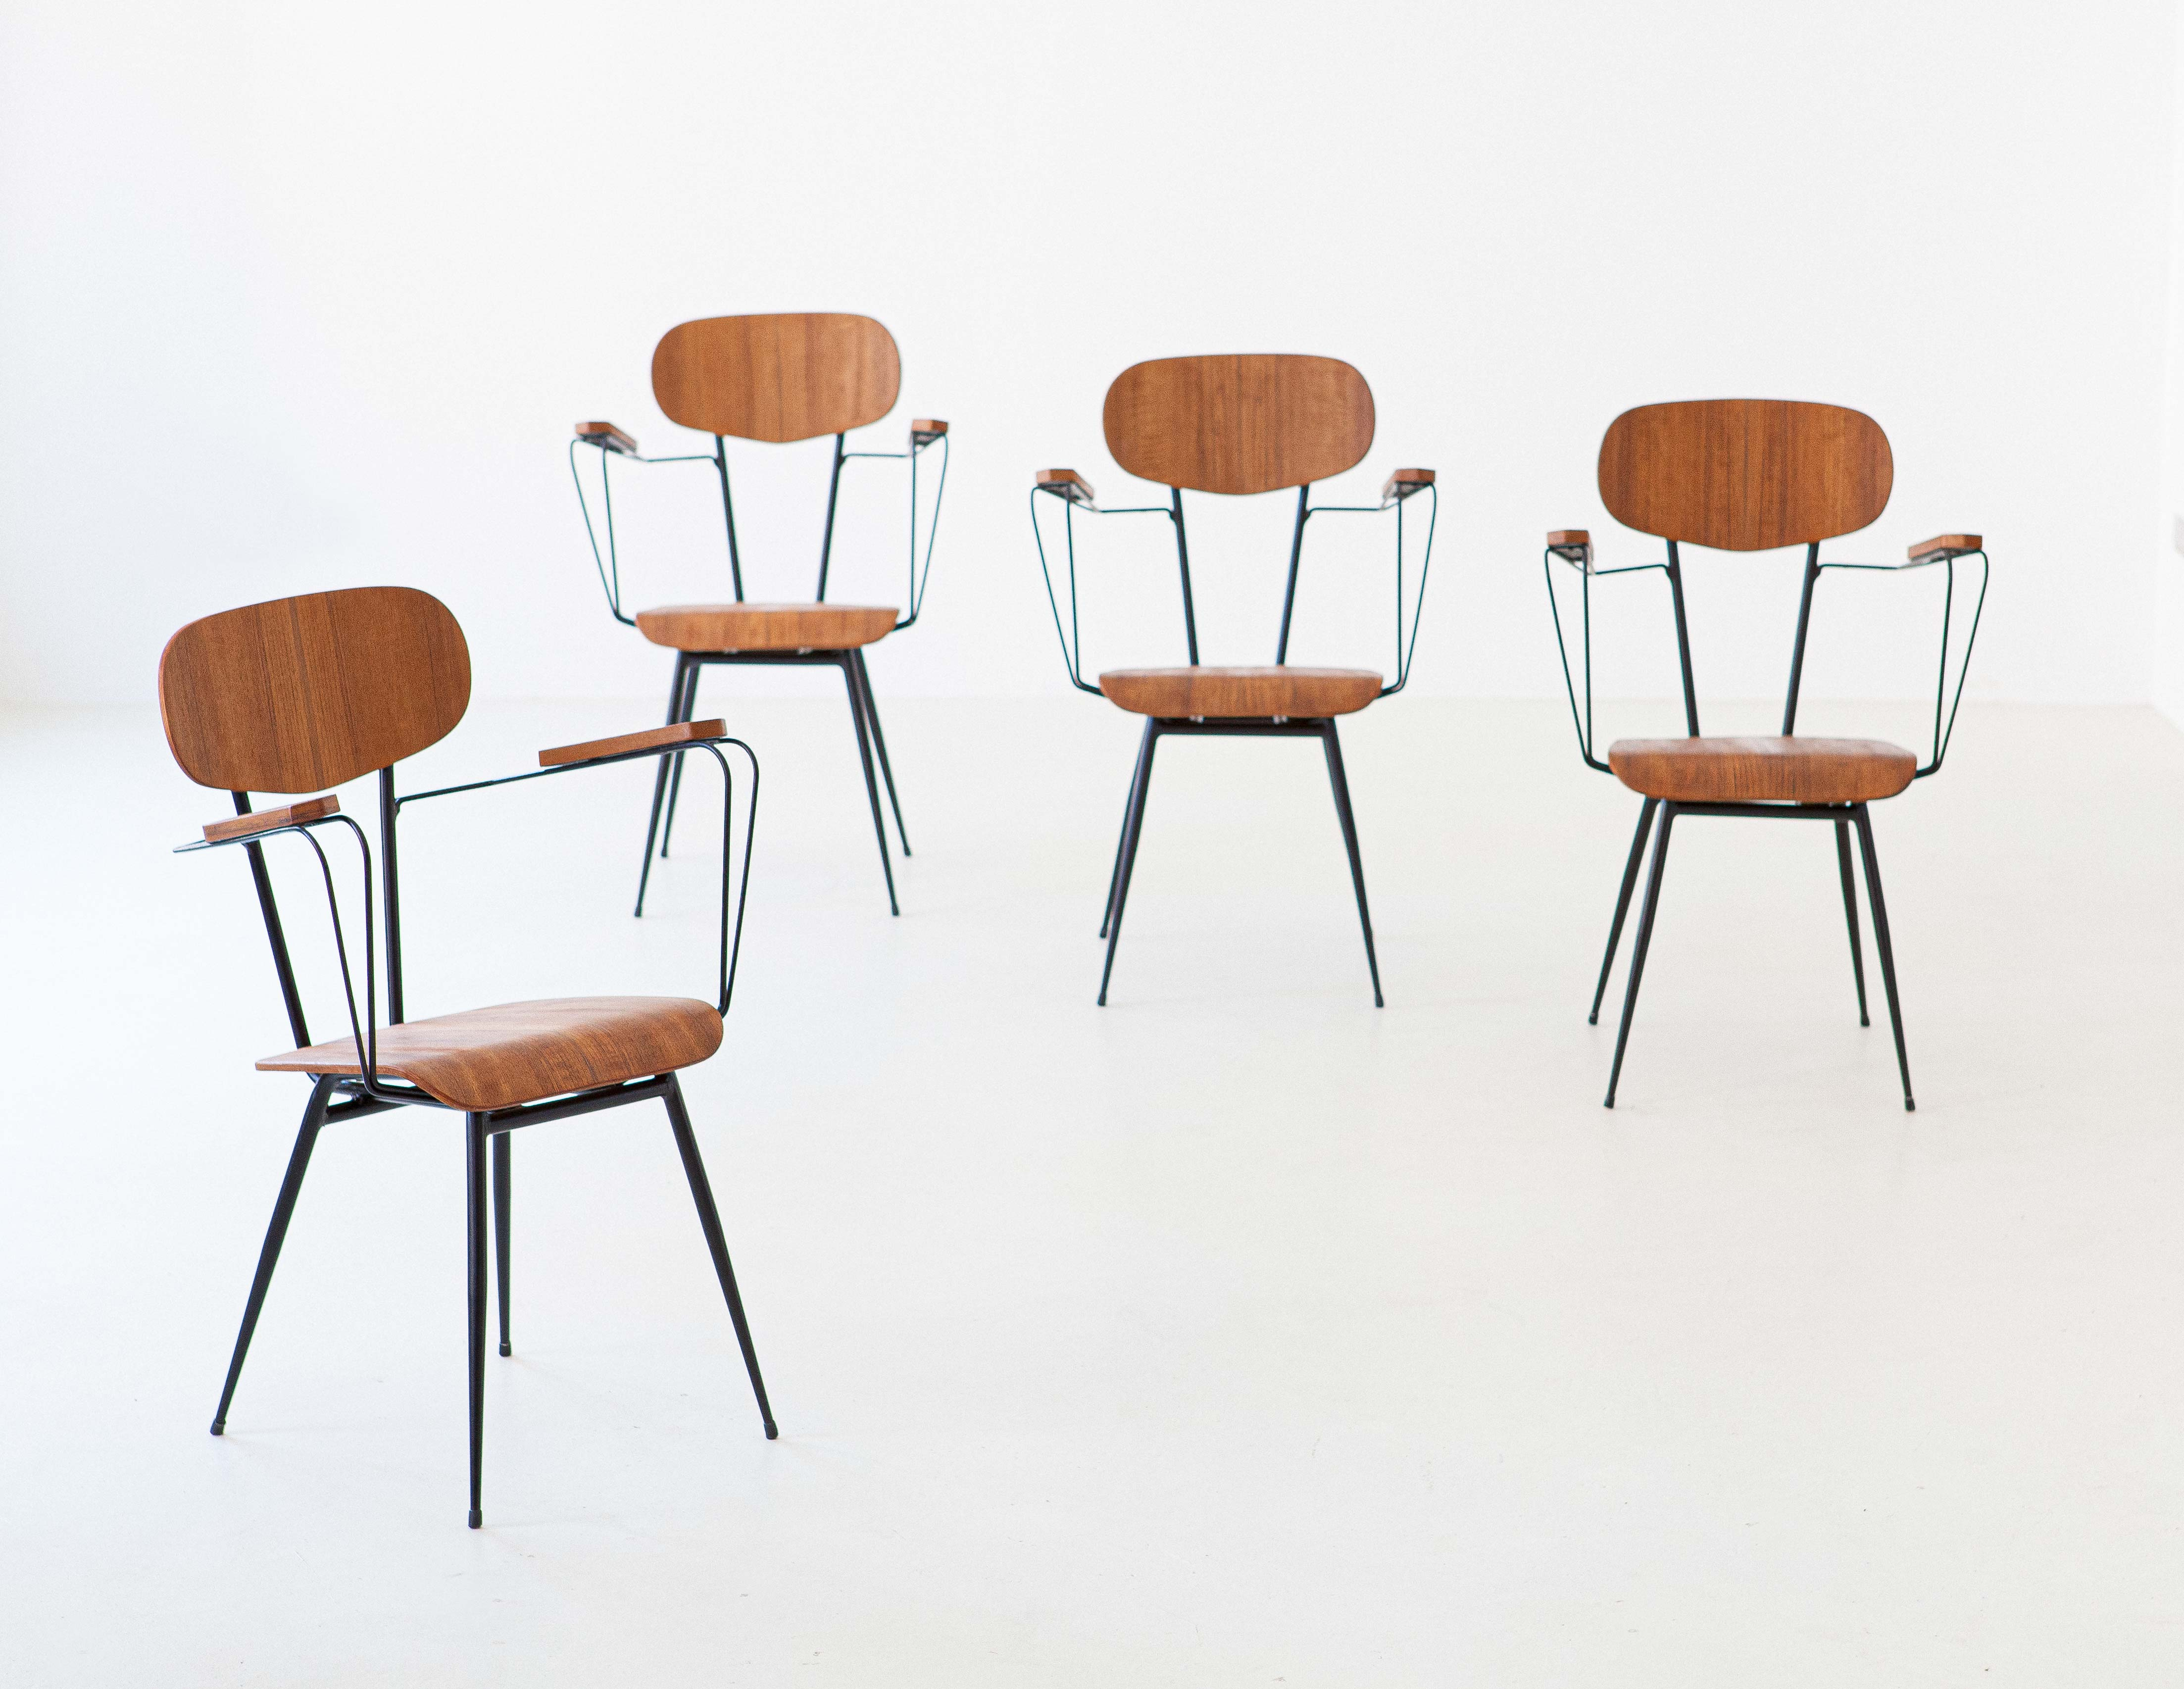 1950s-italian-set-of-four-teak-and-iron-chairs-se303